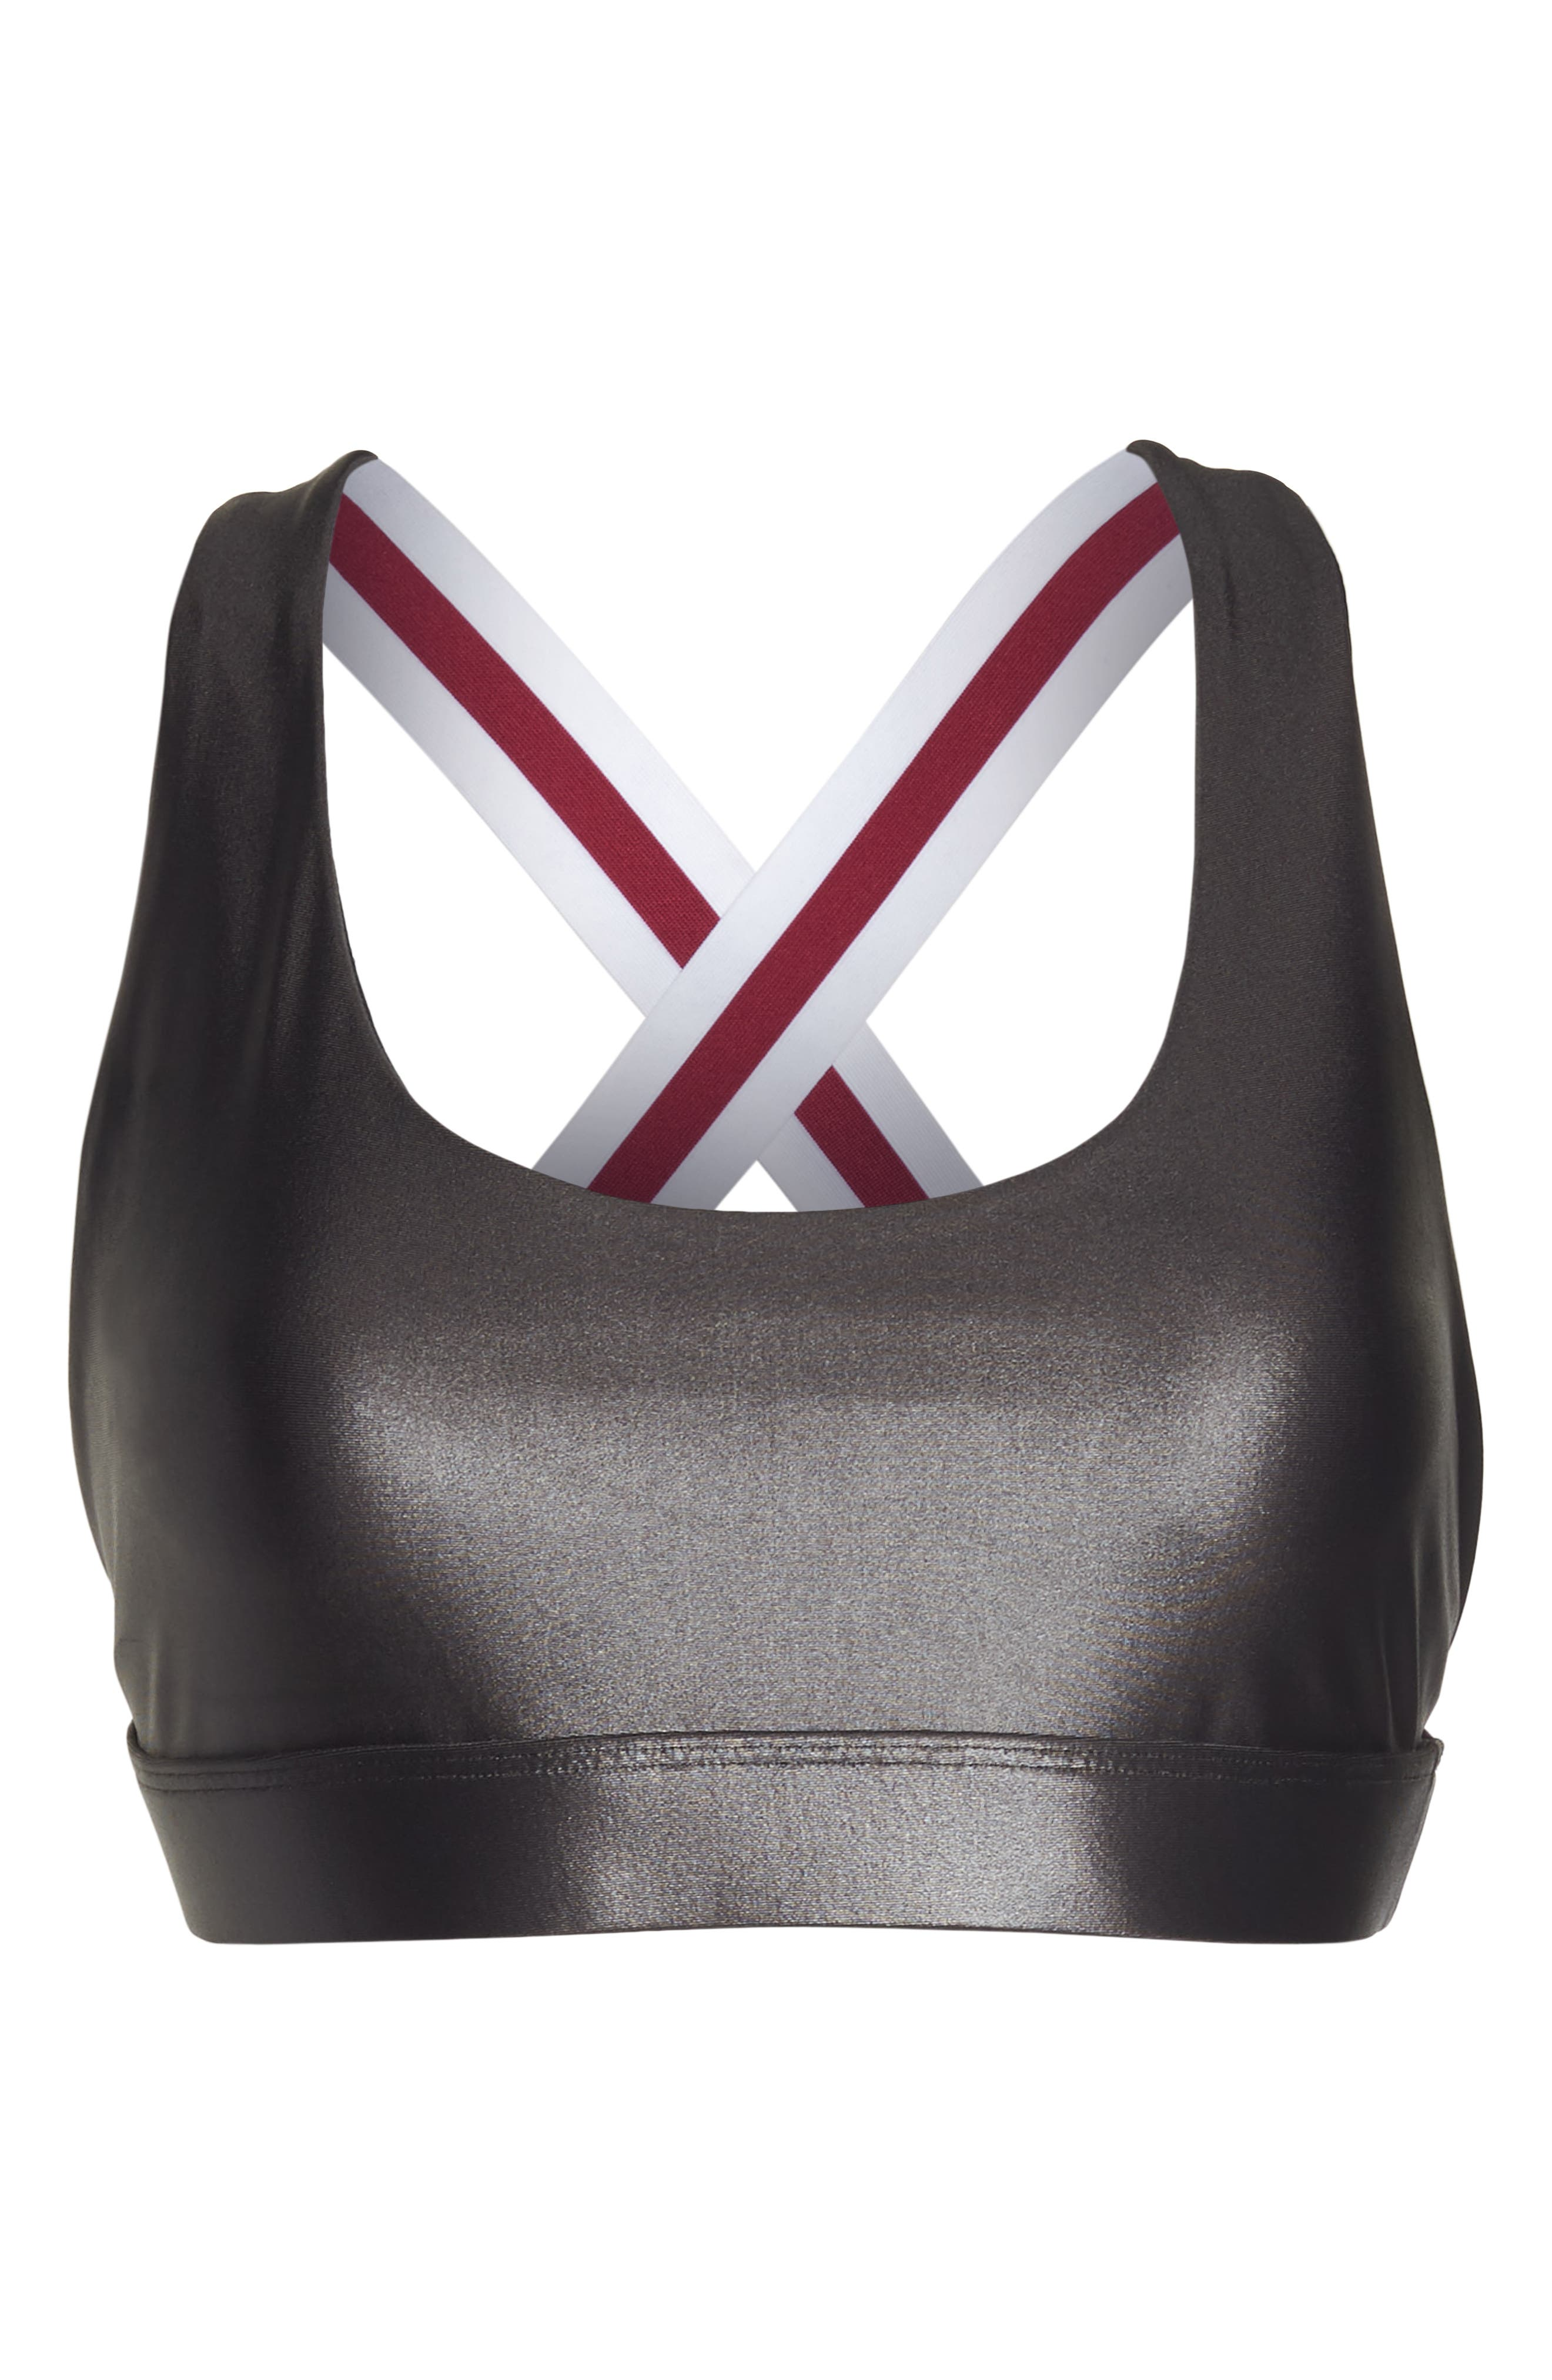 Fame Sports Bra,                             Alternate thumbnail 7, color,                             LEAD